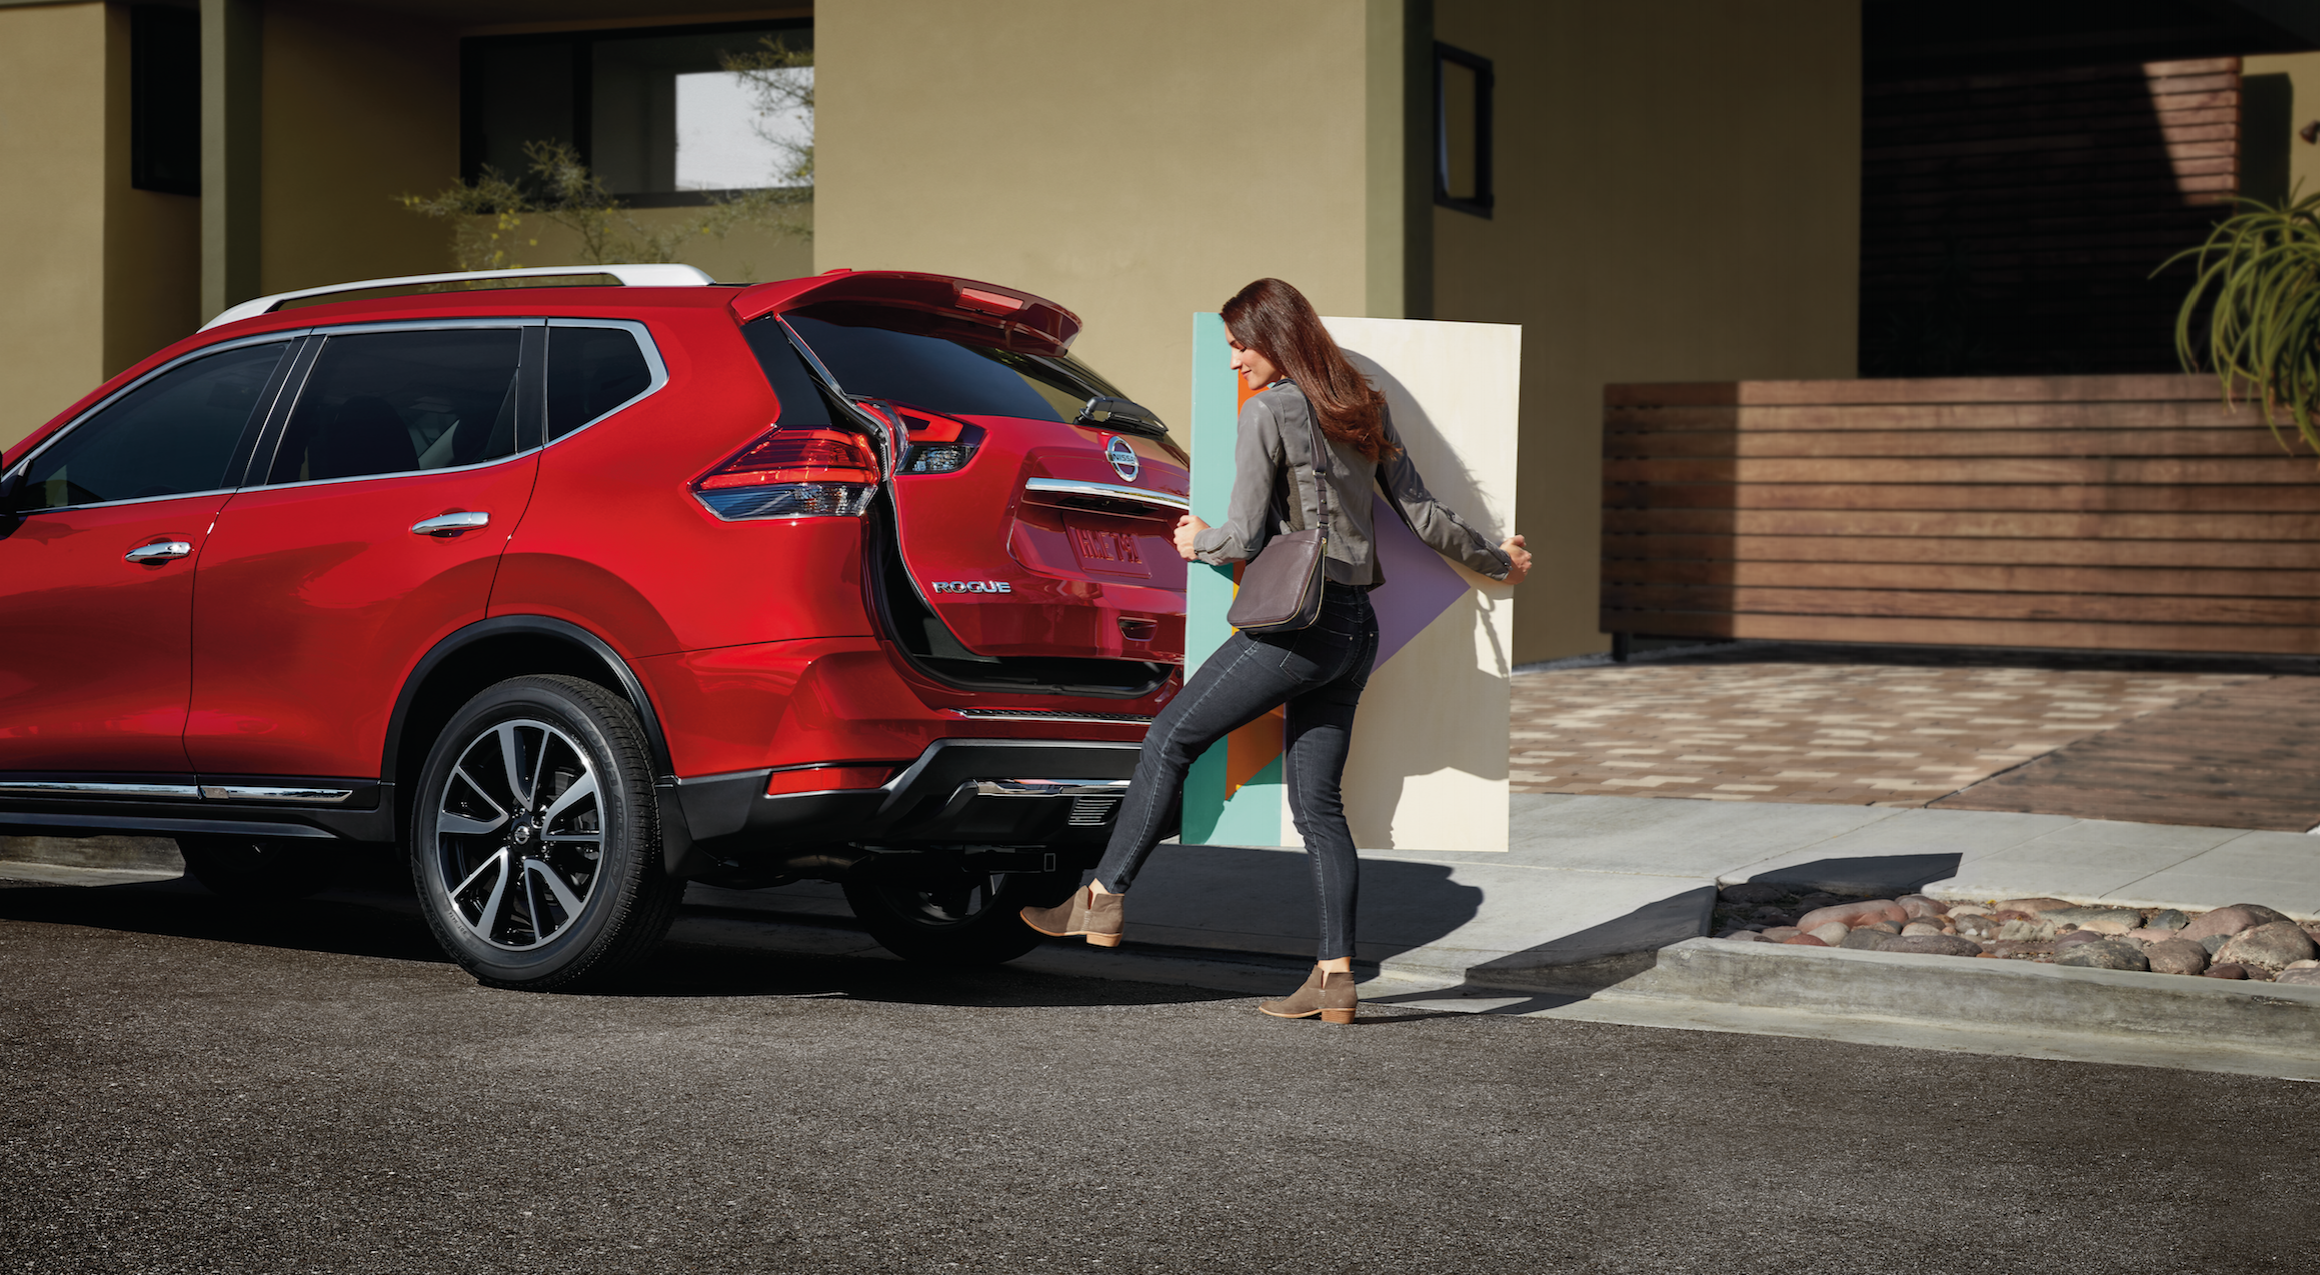 Motion Activated Lifegate in the Nissan Rogue